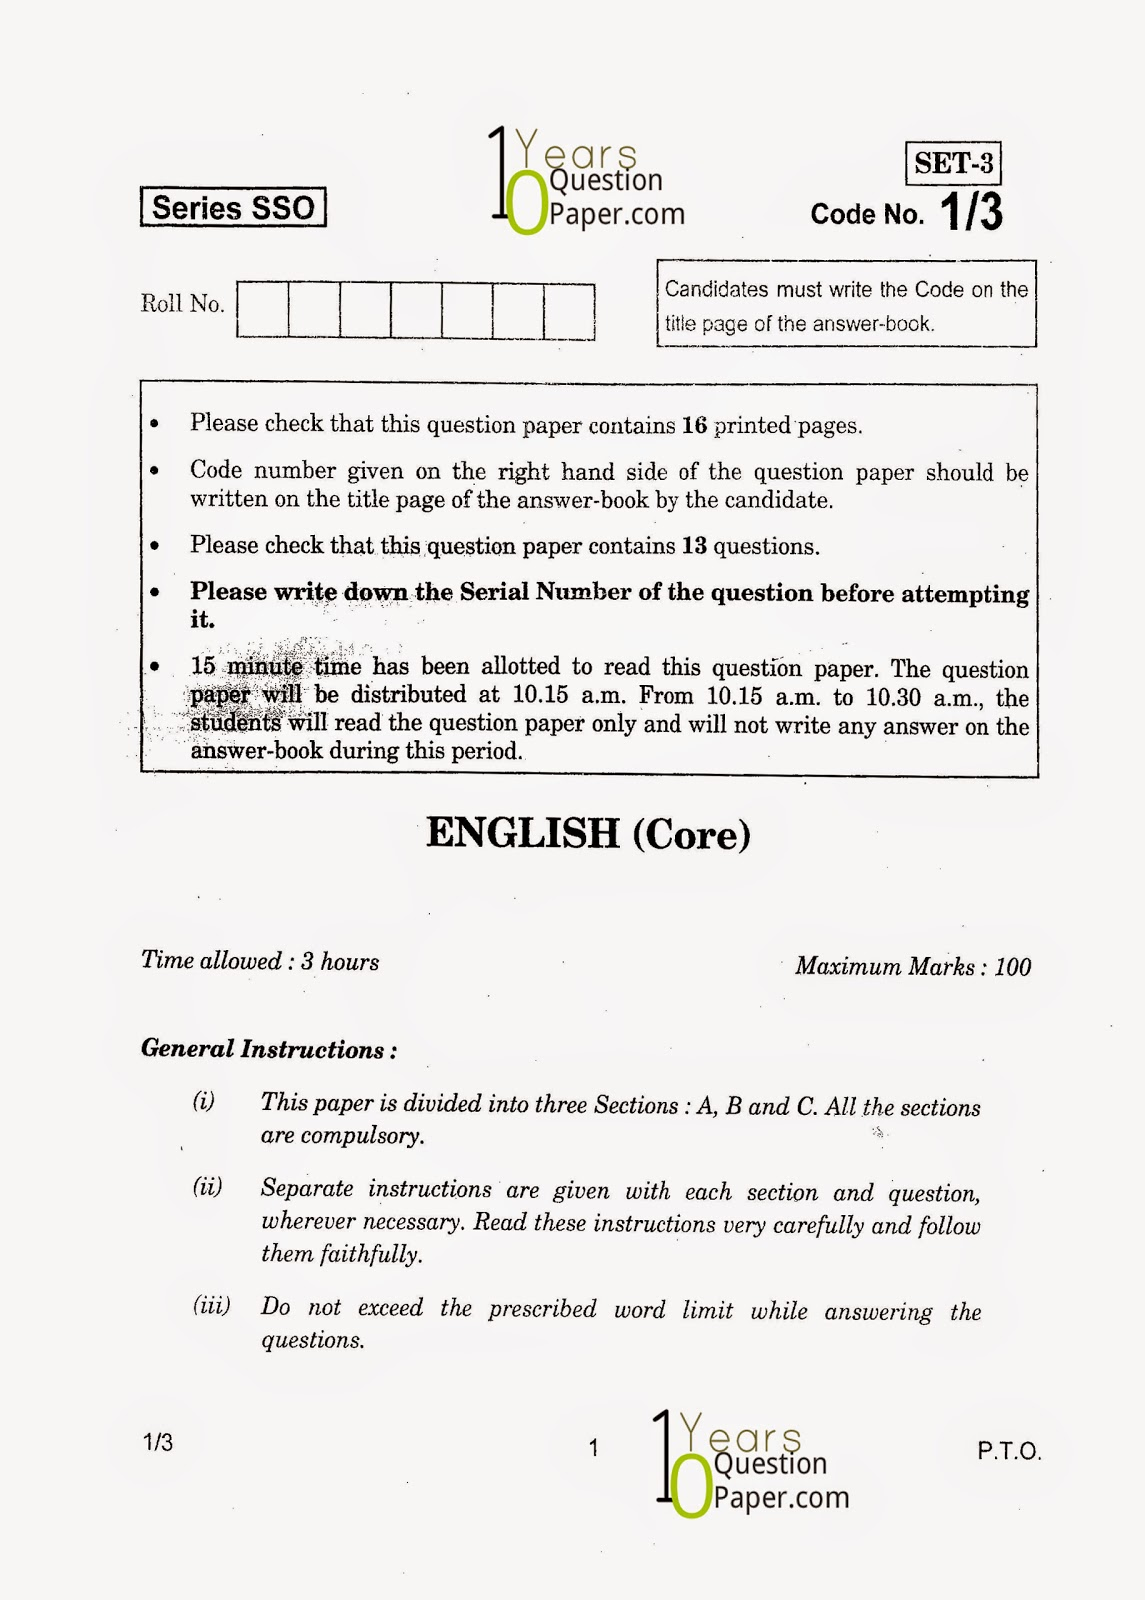 cbse 2015 english core class 12 board question paper set 3 cbse class 12th 2015 english question paper